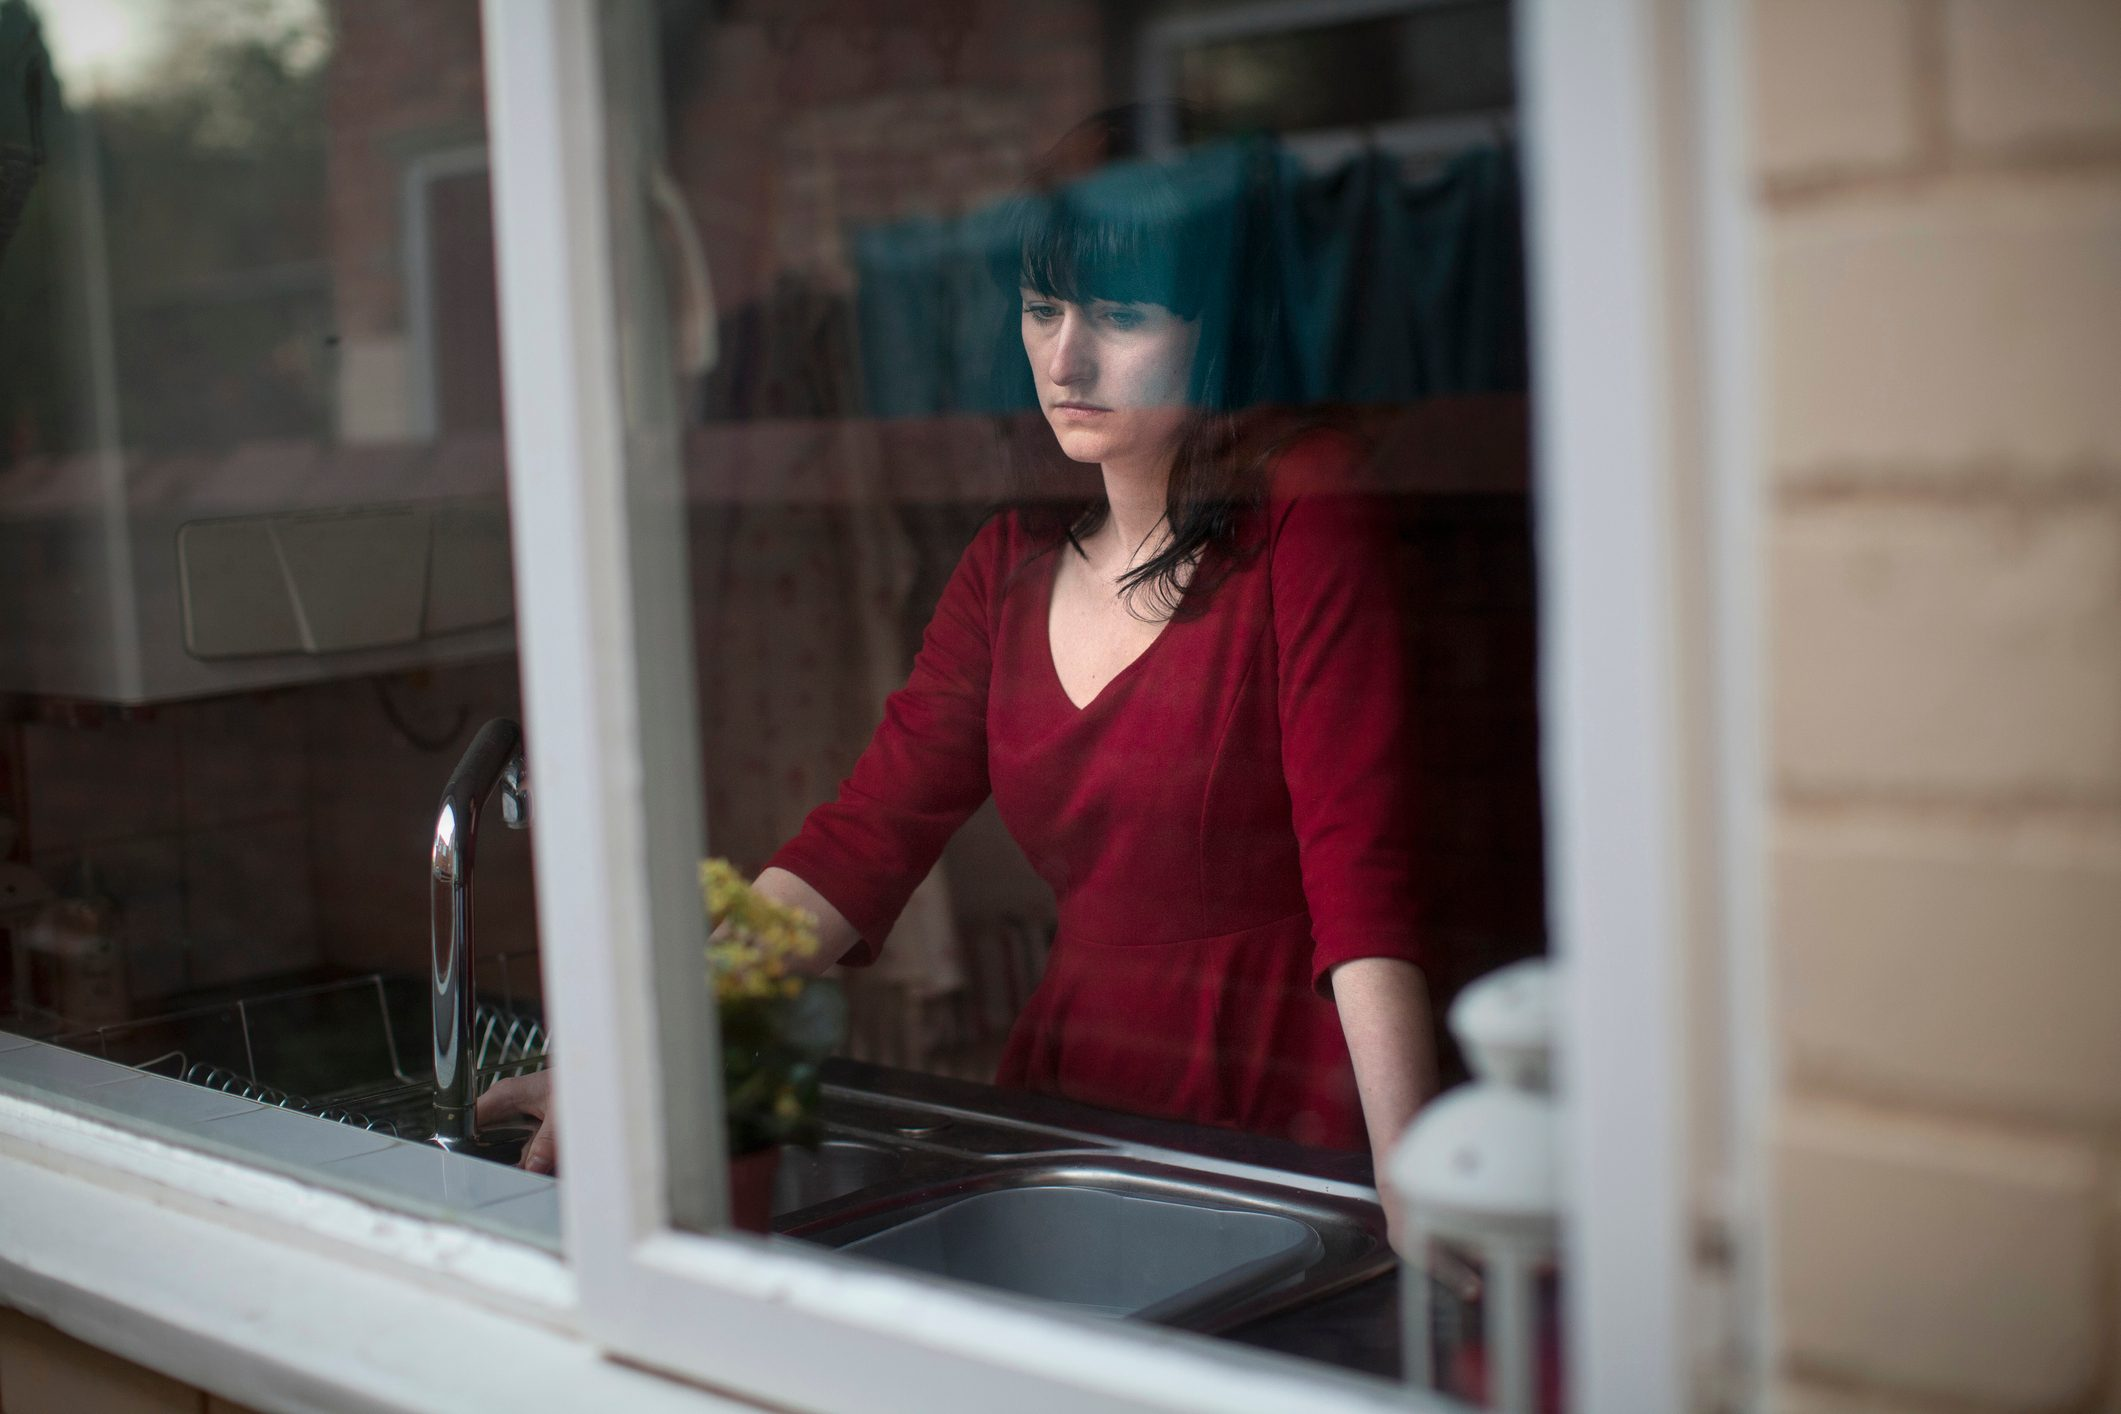 sad woman at kitchen sink, looking out window